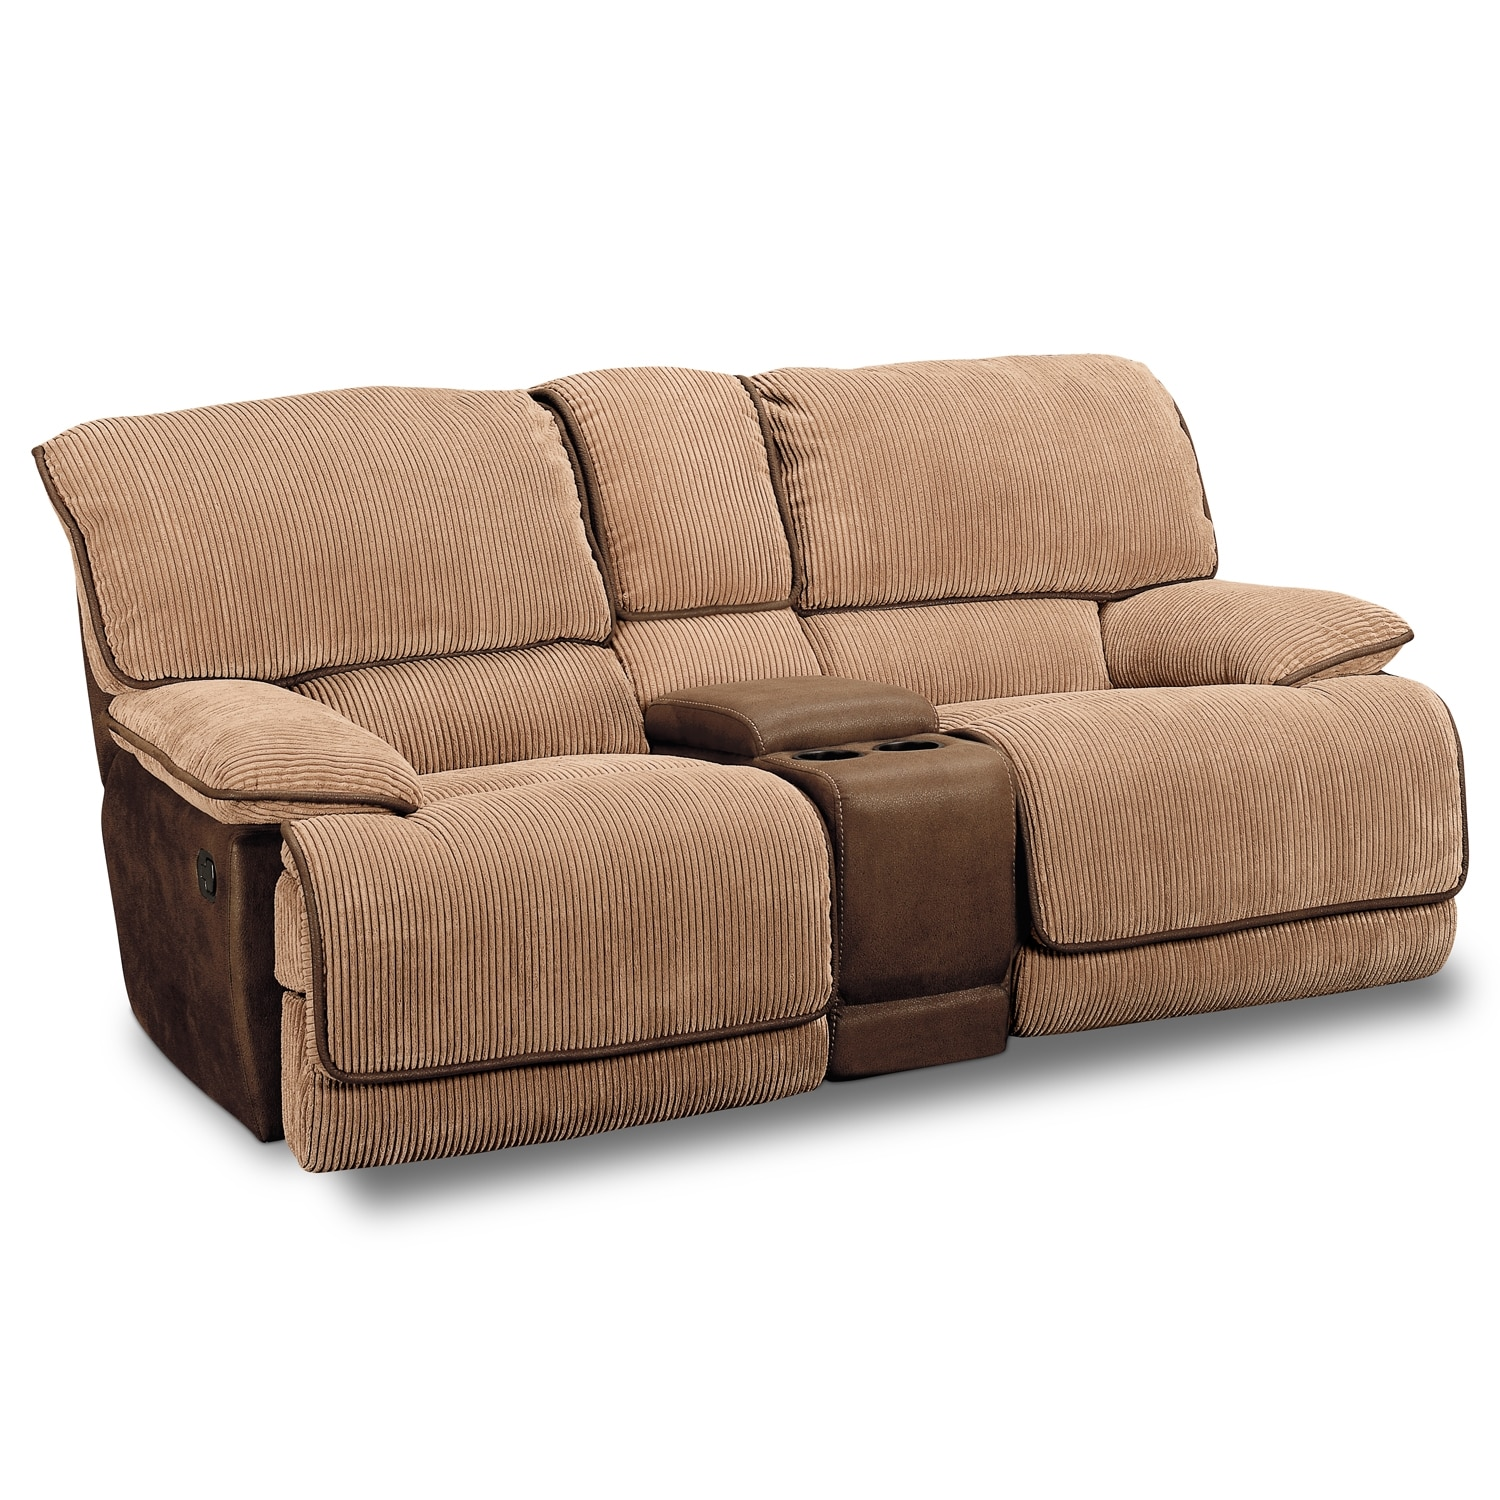 Putnam camel gliding reclining loveseat Loveseats that recline